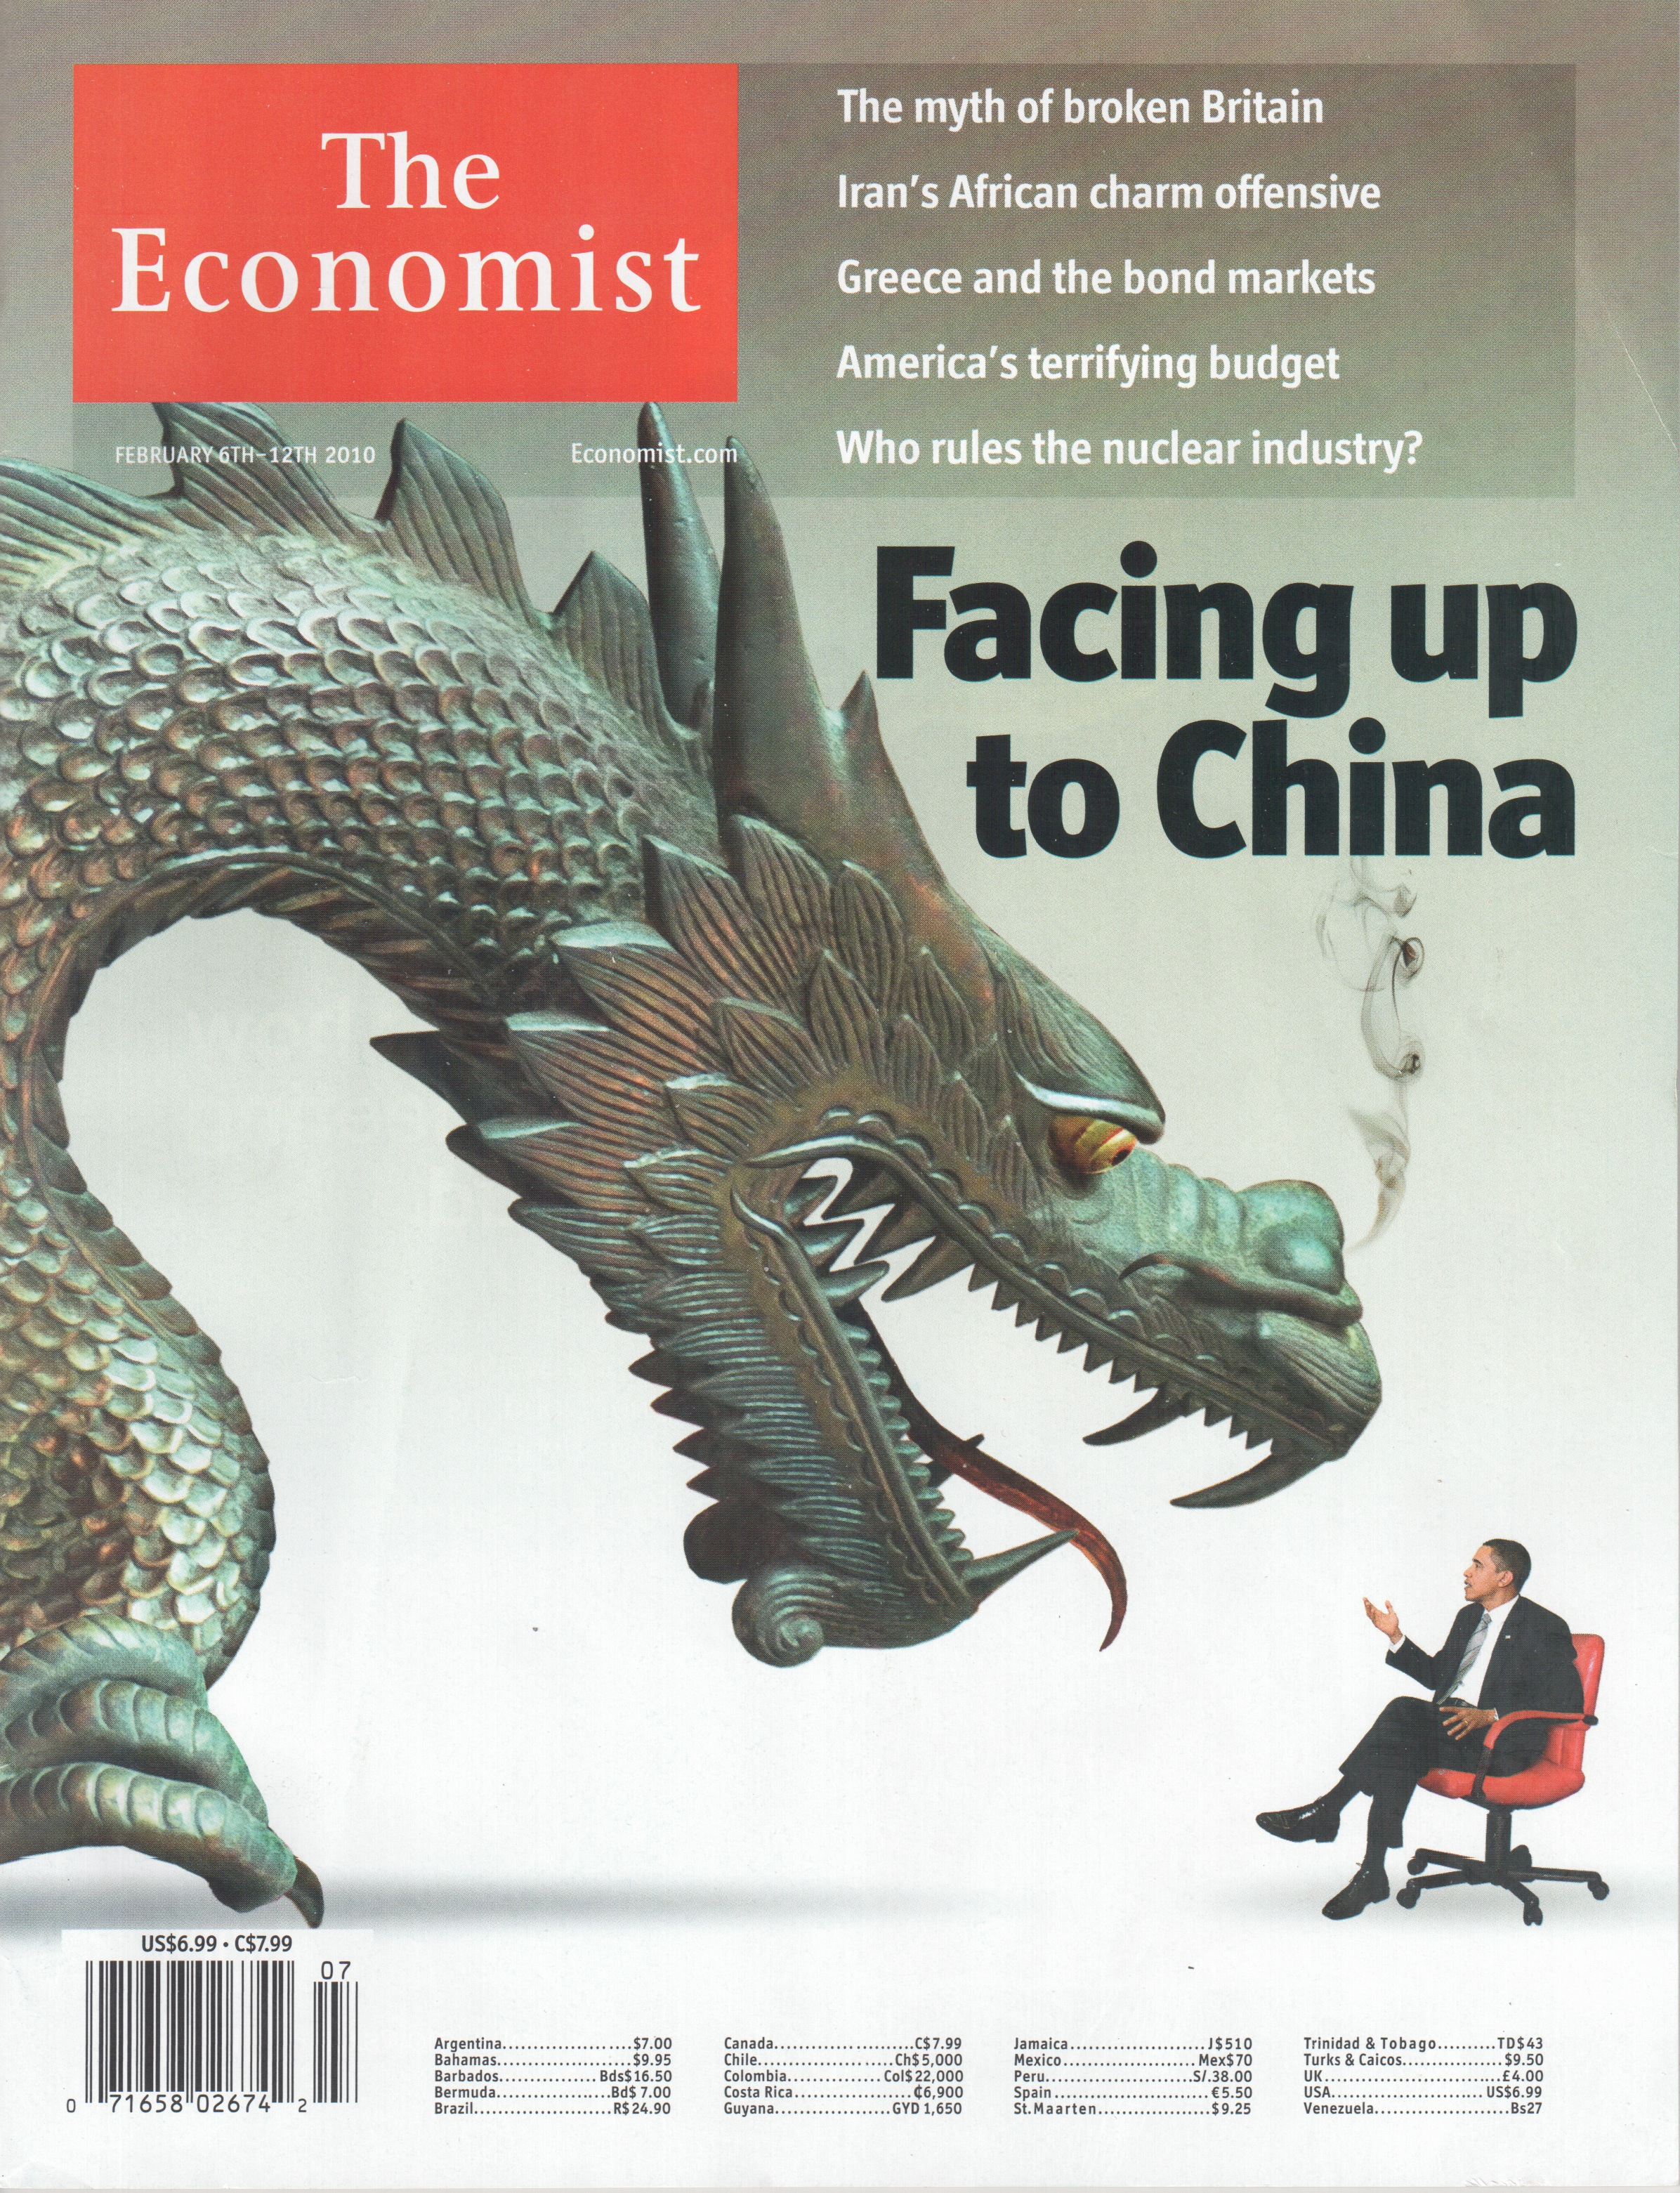 http://www.chinas-global-media-image.net/media/uploads/cover/05/images/Cover_7.jpeg